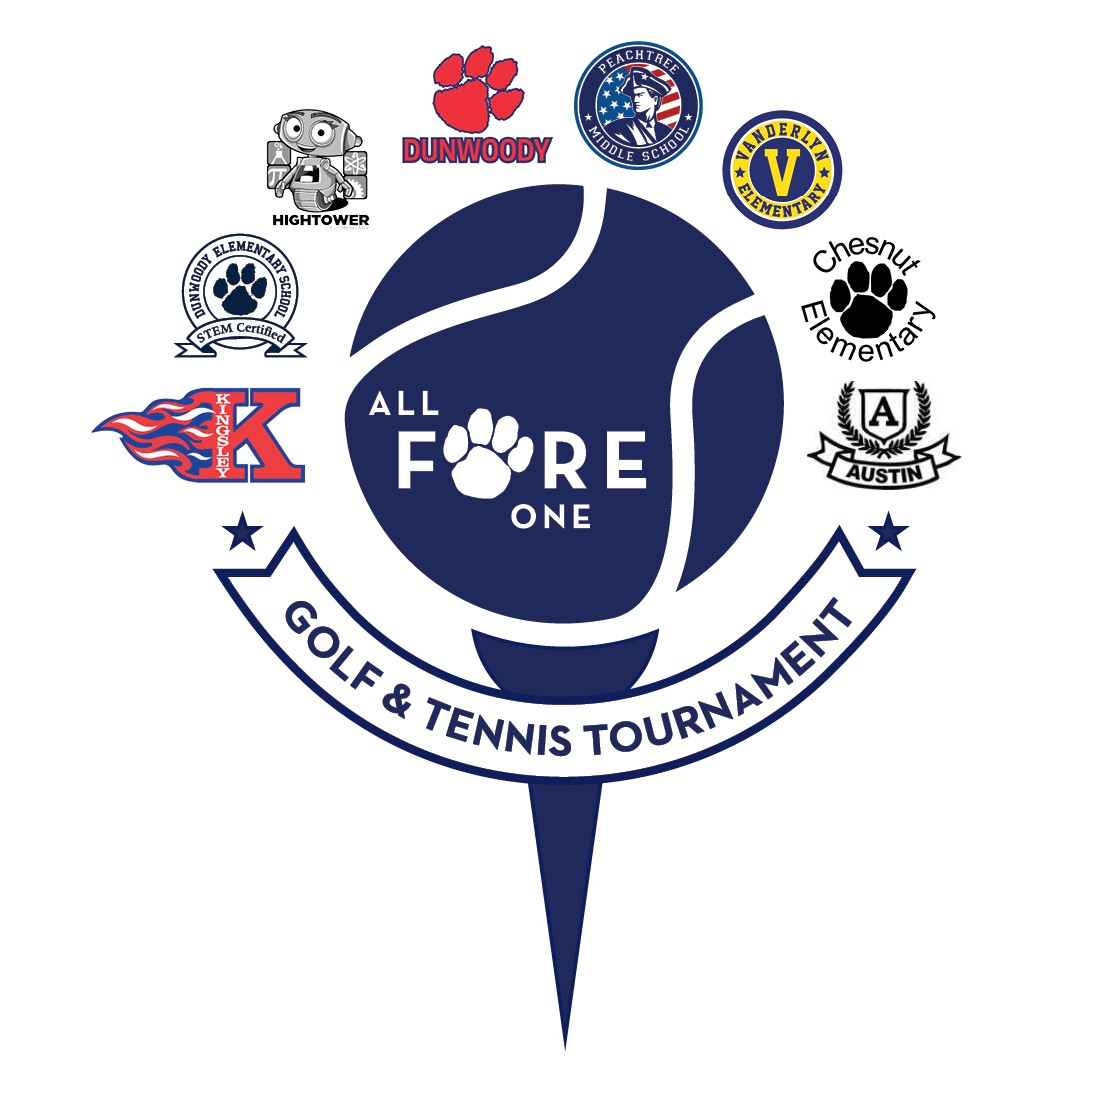 All Fore One Golf & Tennis Tournament - Default Image of Bronze Sponsor